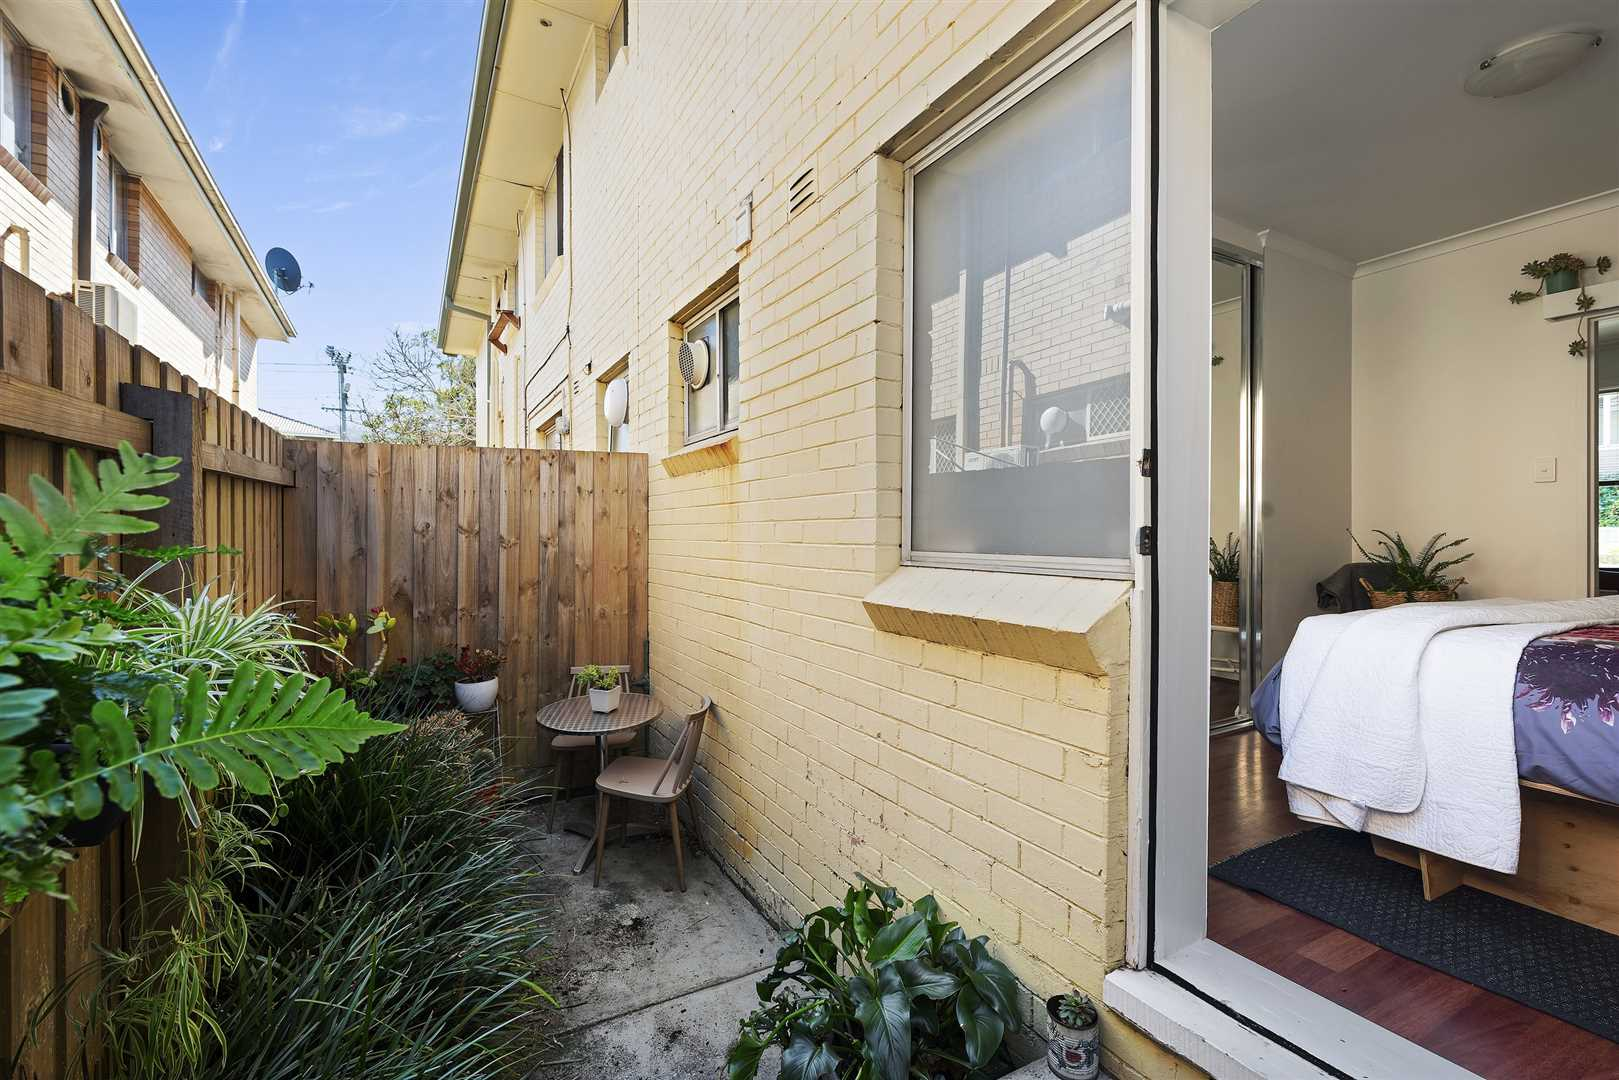 Cute Courtyard, Nice Renovation & In The Right Location...